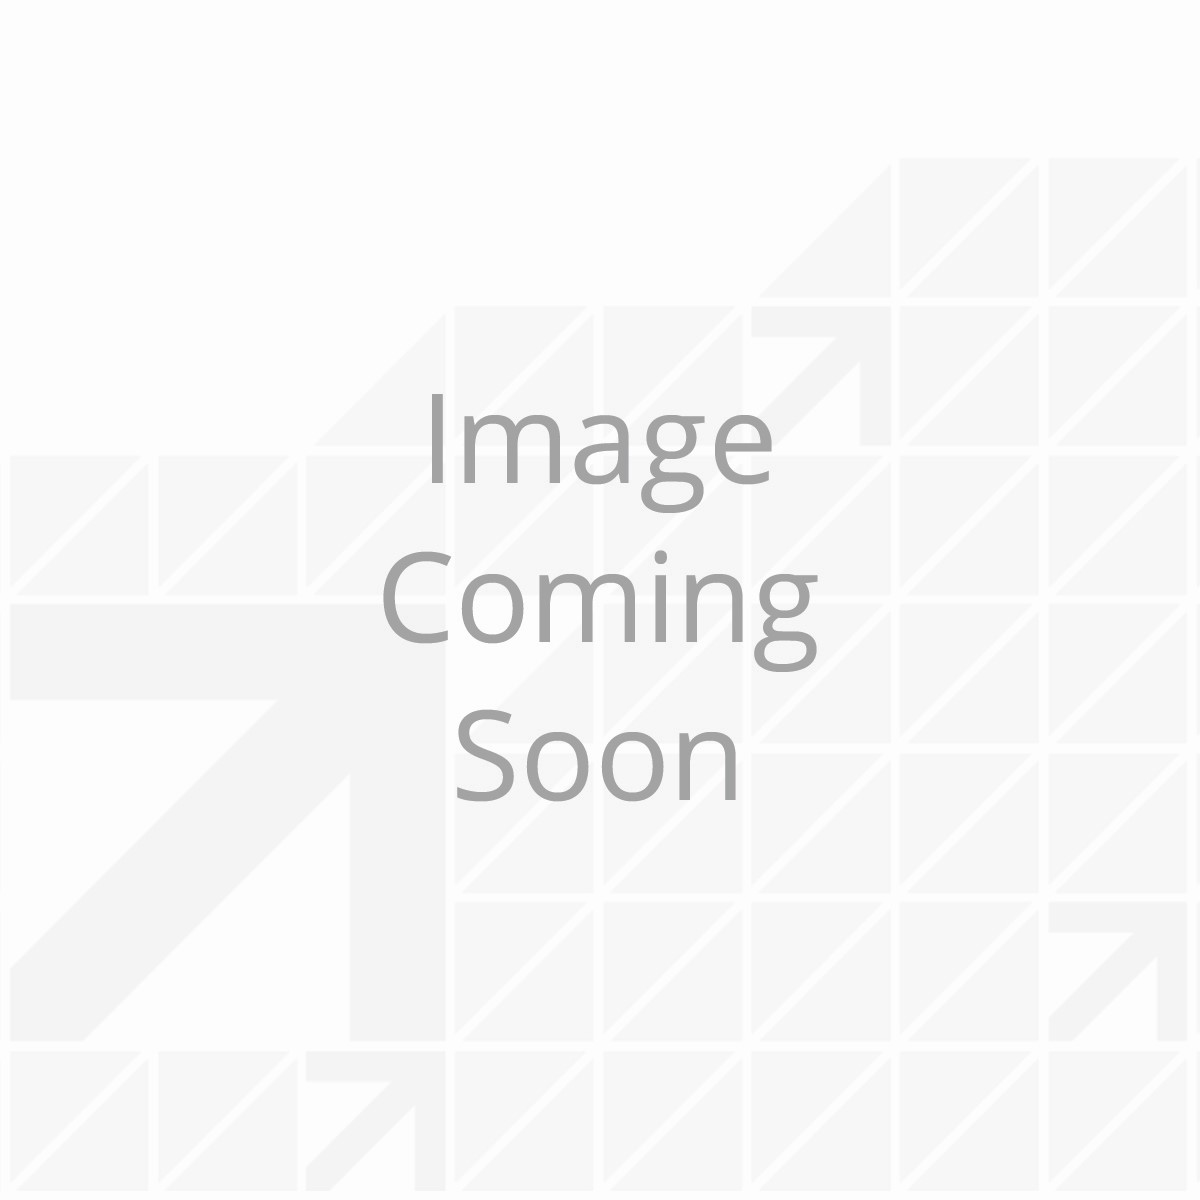 Tandem Axle AP Kit with Standard Bolts For Standard Equalizer